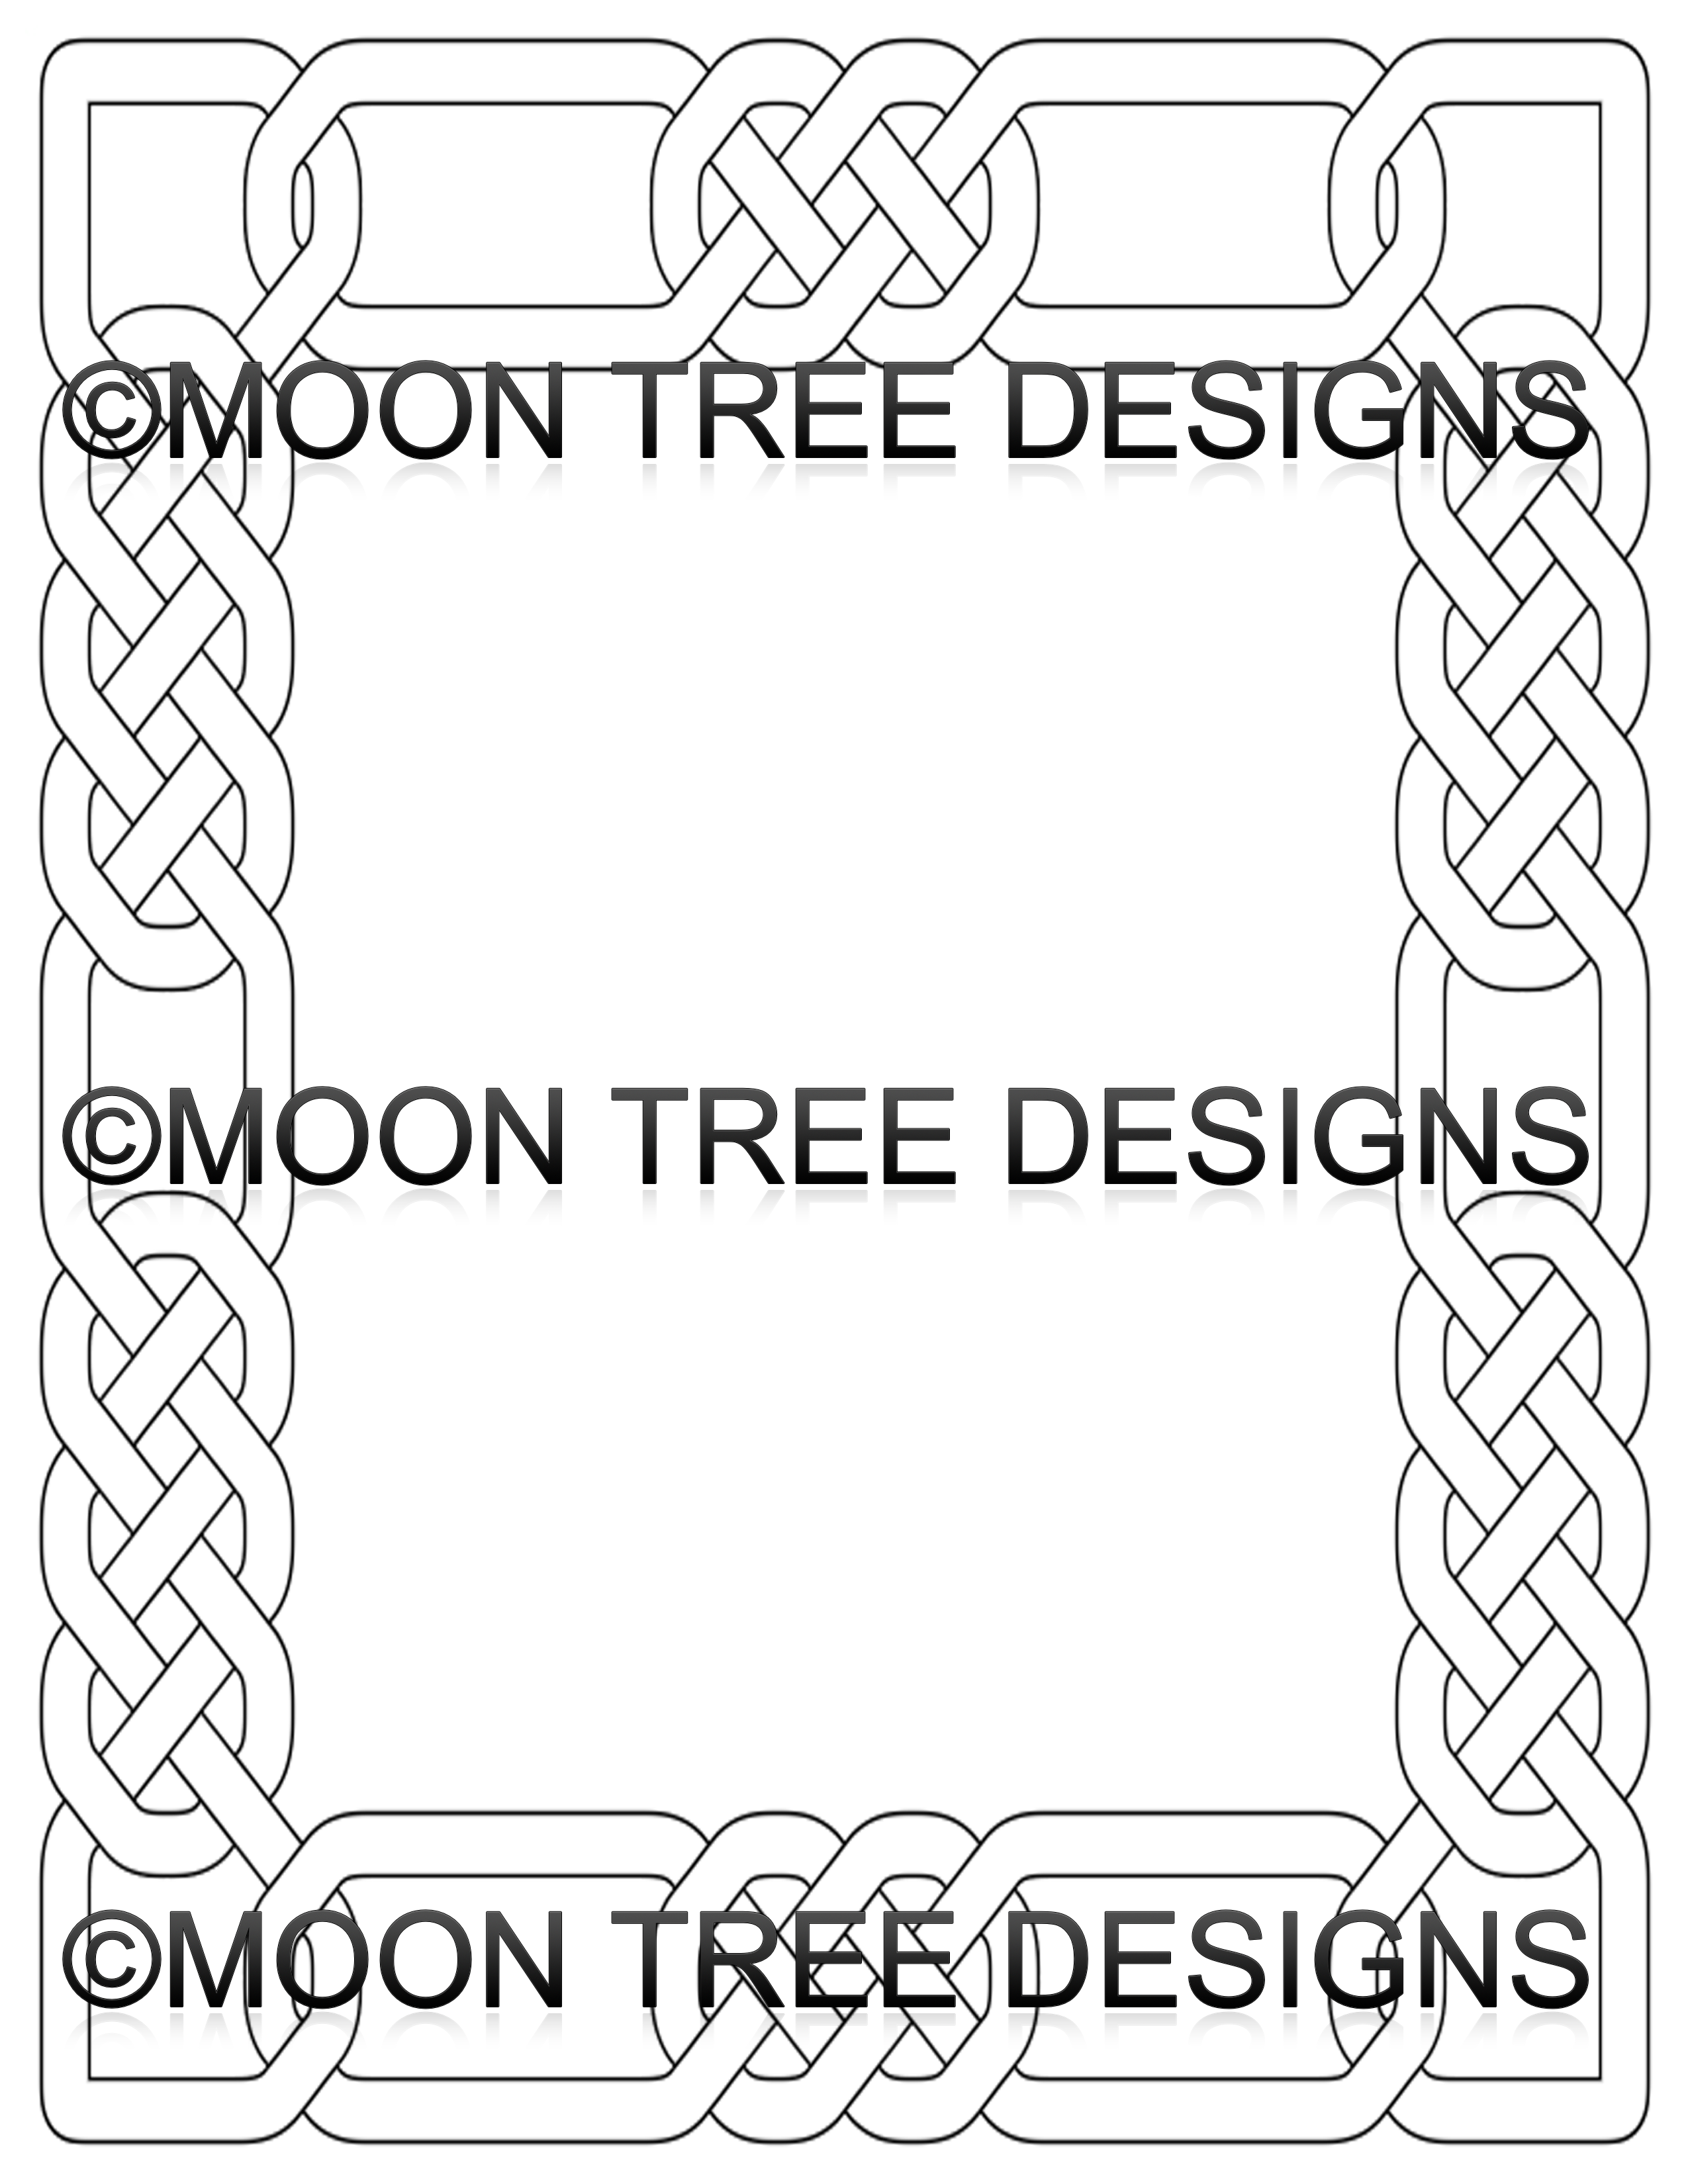 just print and color dimensions 85 x 11 standard letter size output printable and ready to color stationery paperr with celtic borders